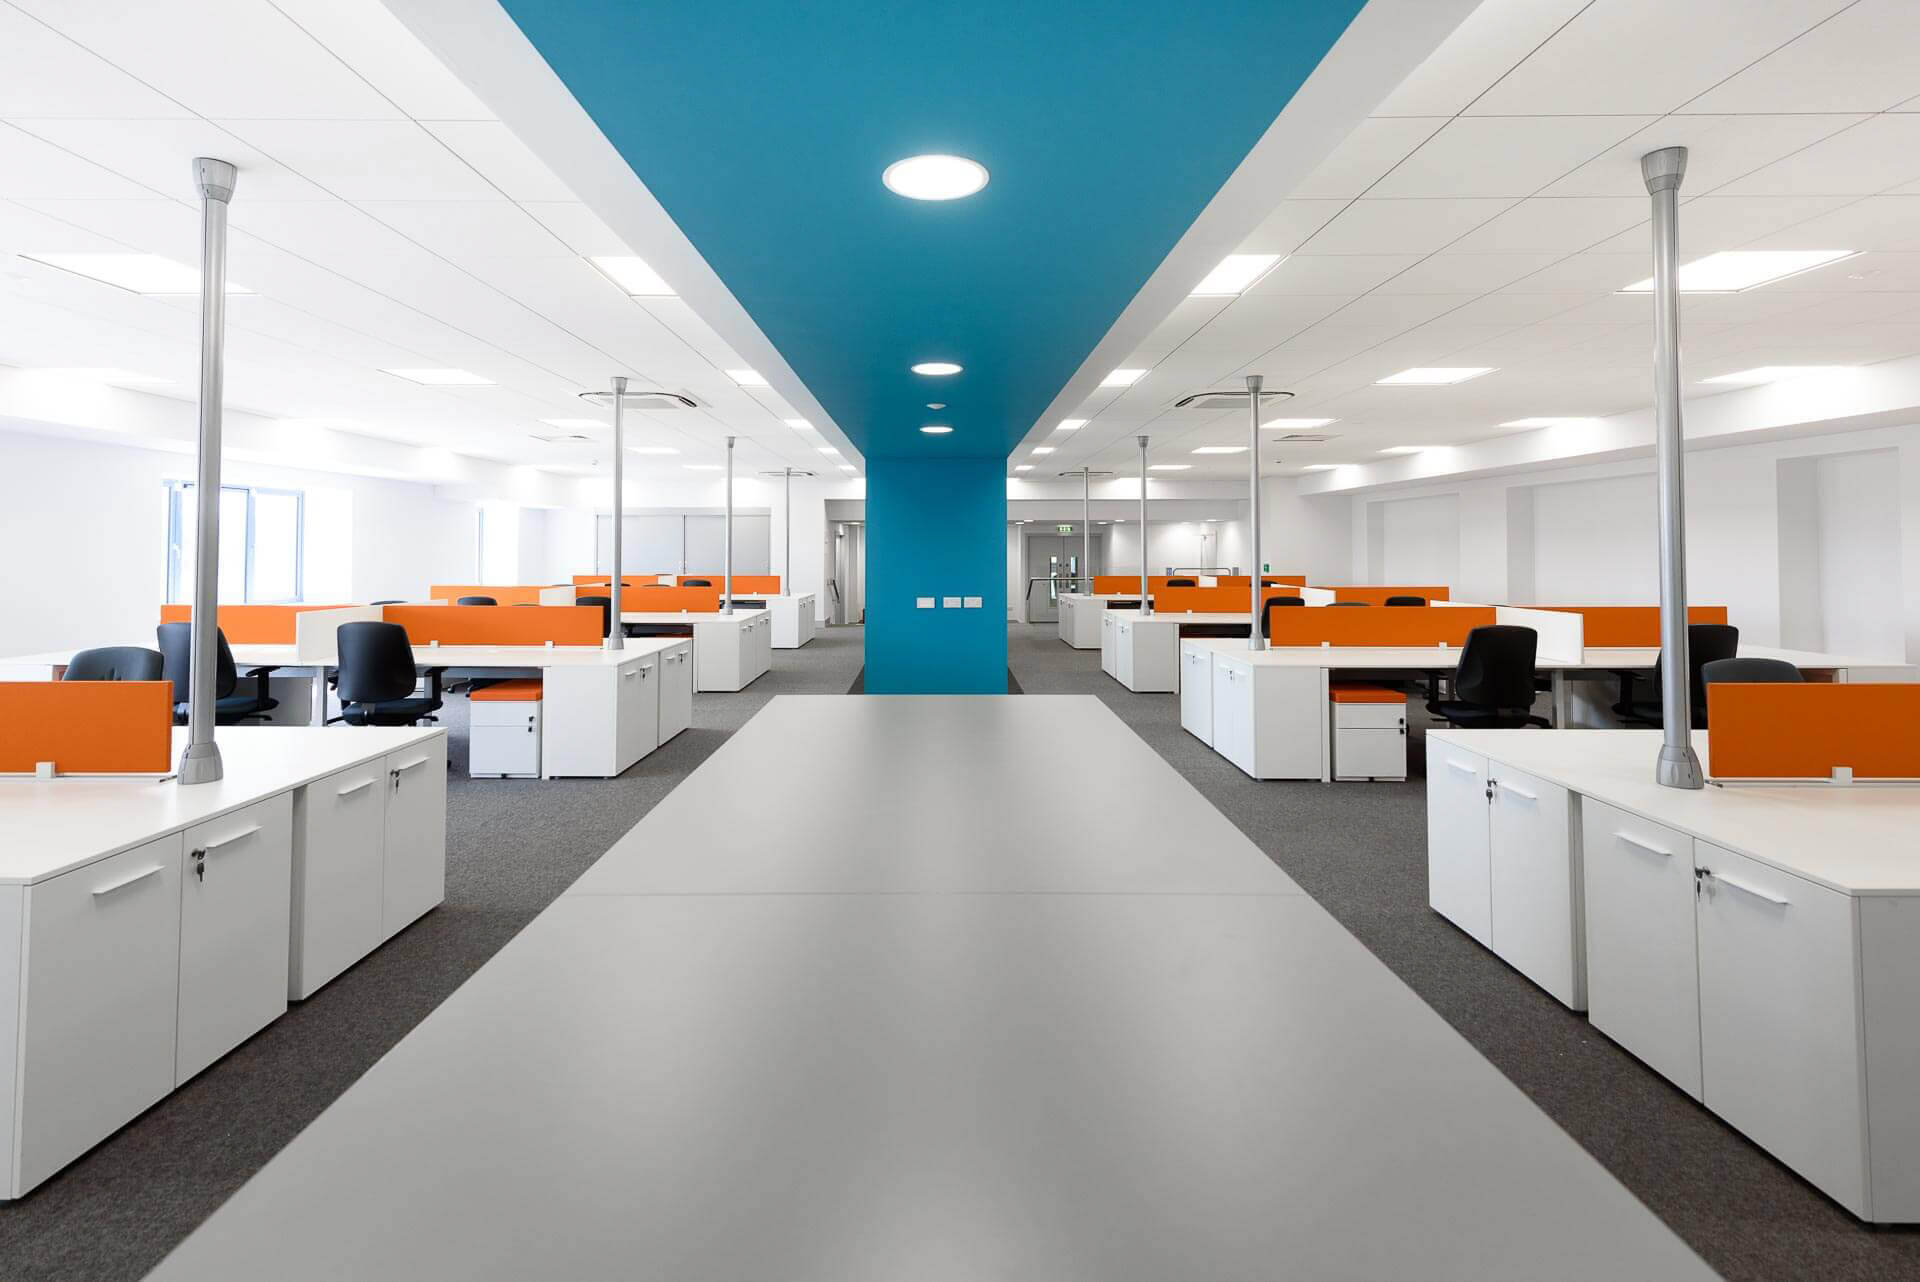 Open plan office area with blue snake feature forming print station and stationary area with white office desks, orange privacy screens and grey office chairs.